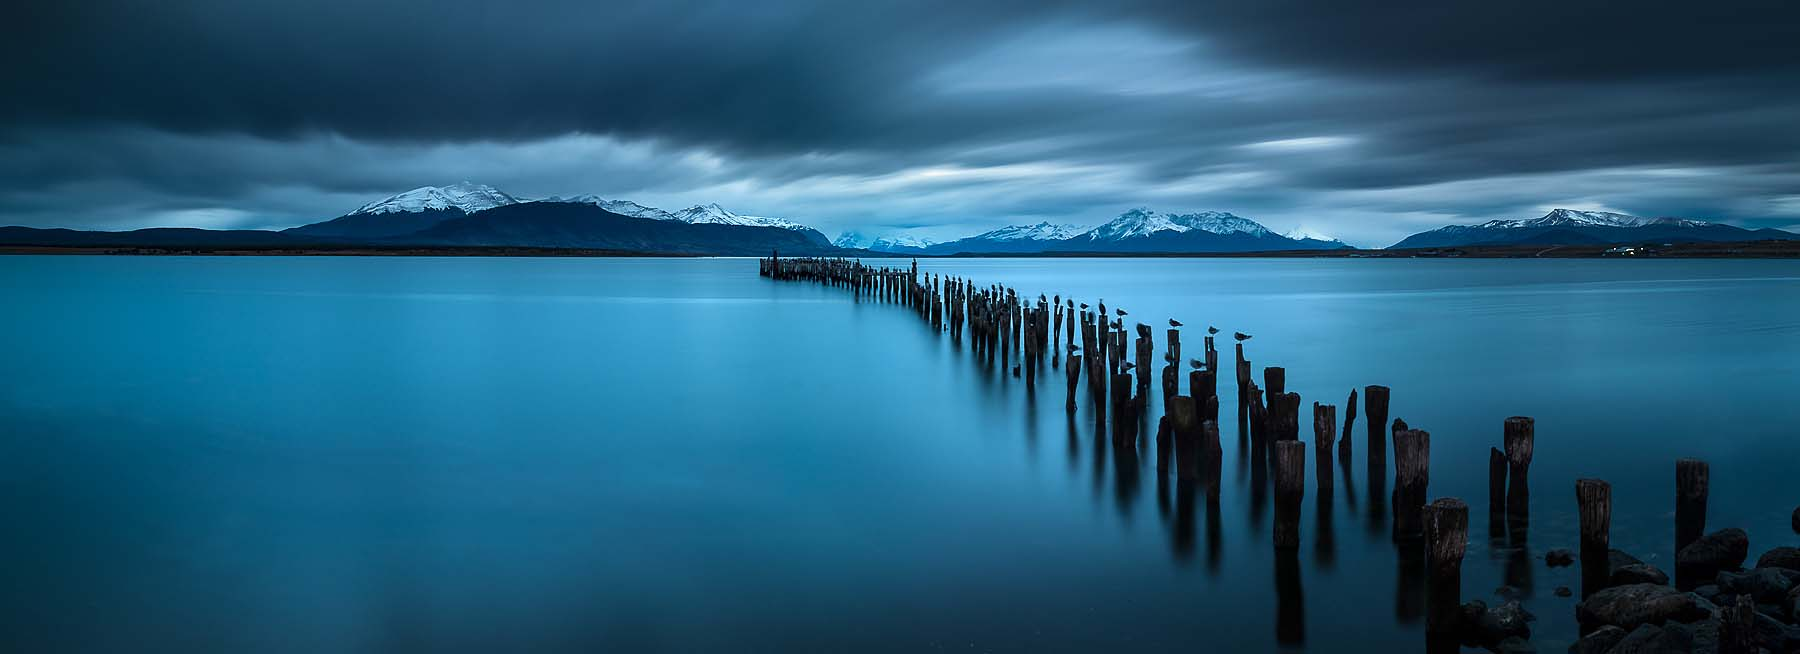 Last-Hope-Sound-Twilight-Panoramic-Puerto-Natales-Patagonia-Chile